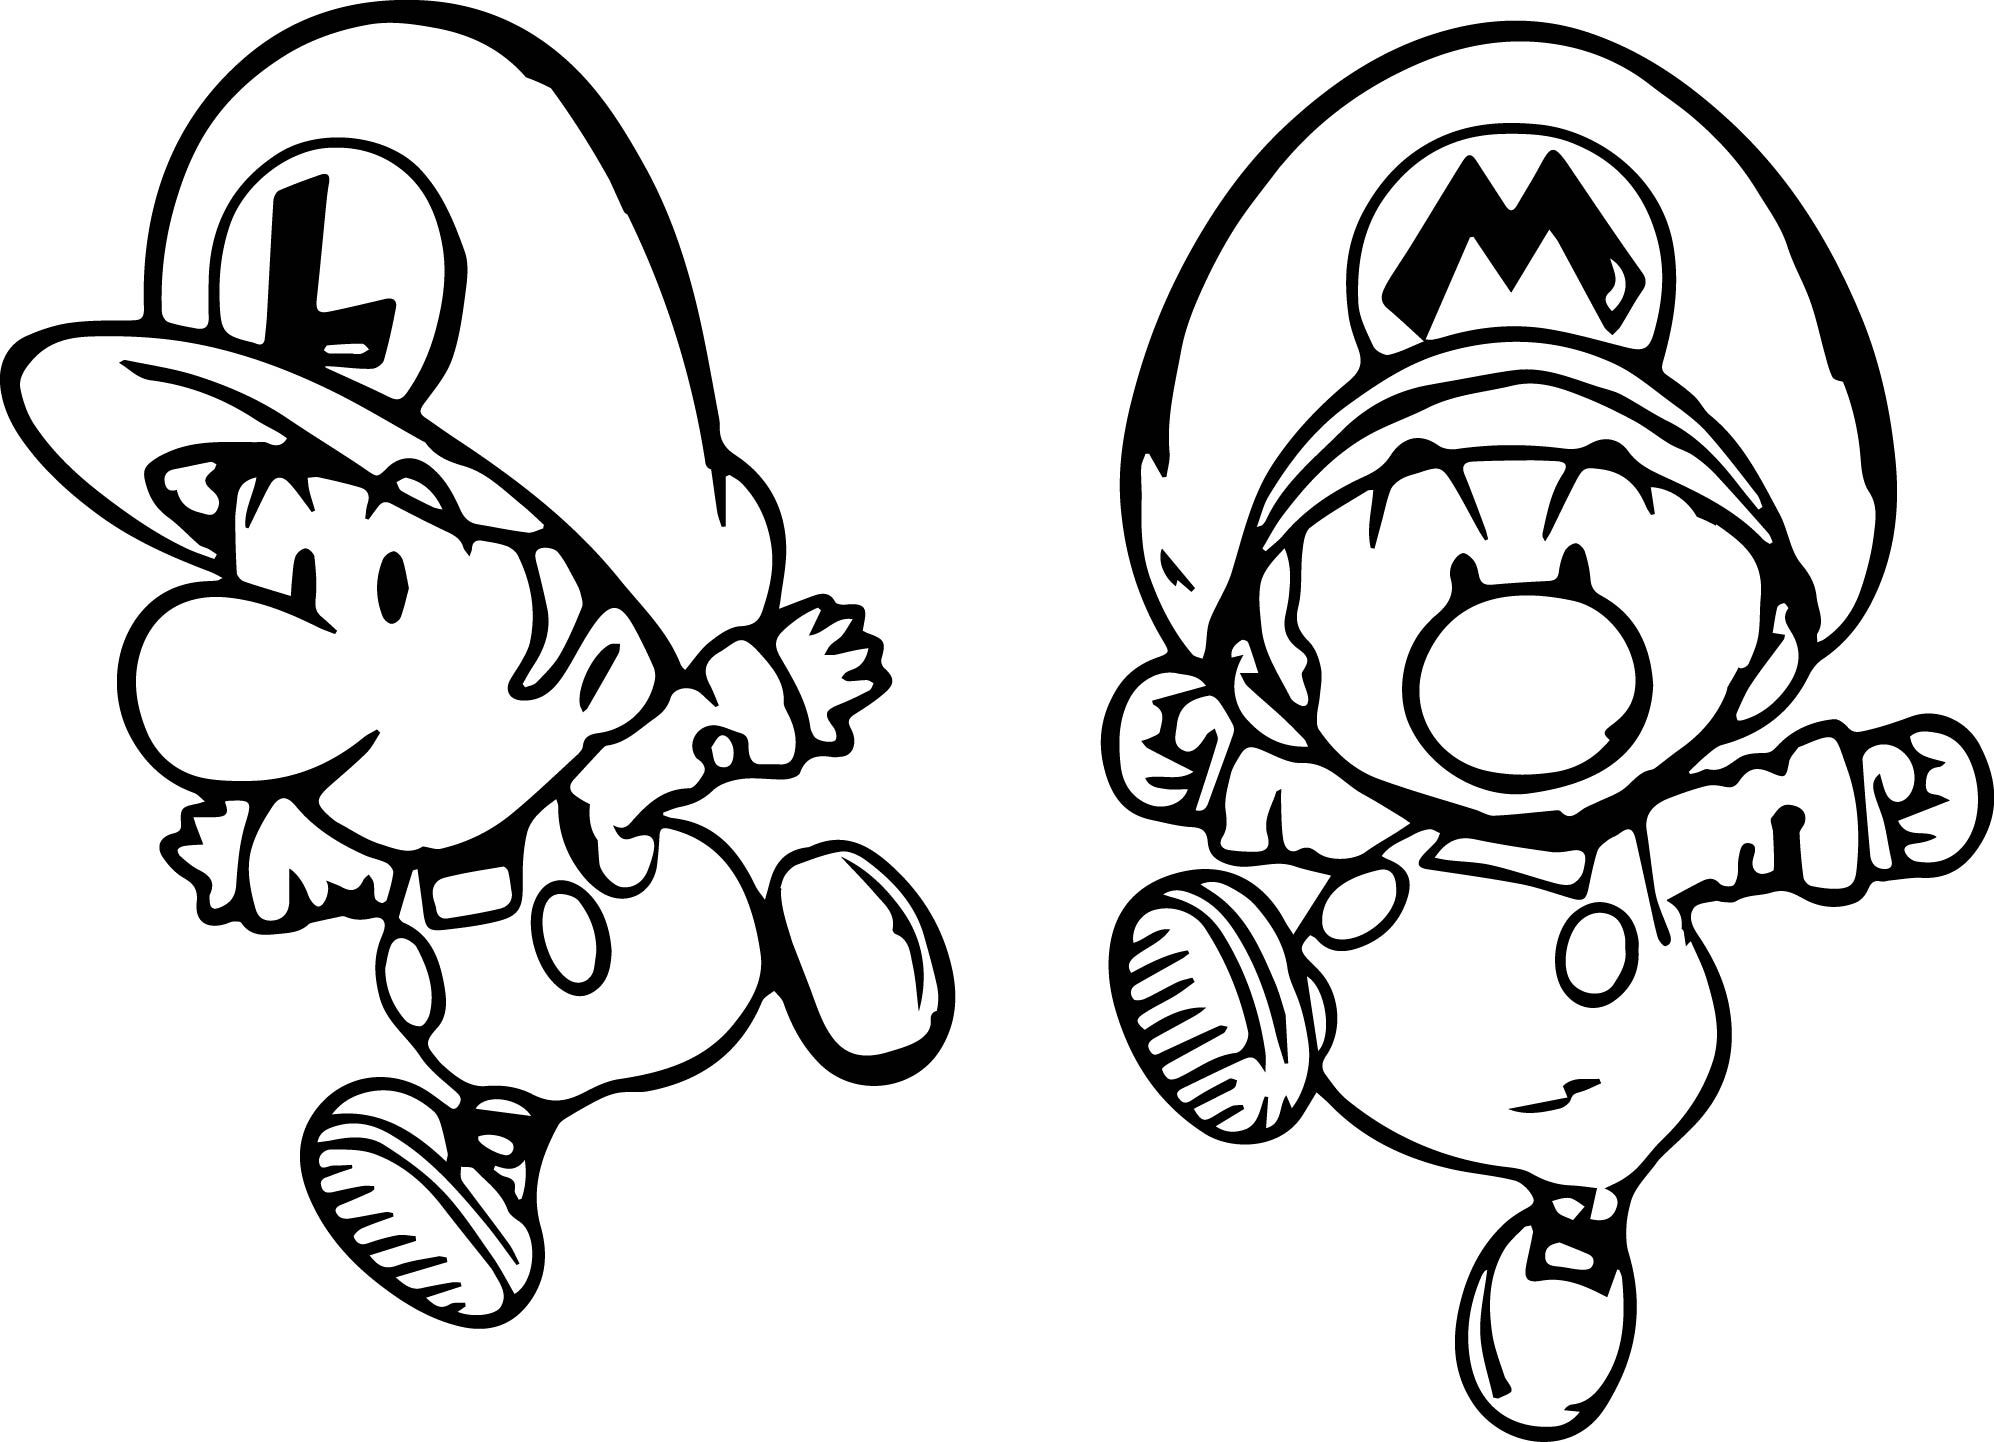 Nice Super Mario And Luigi Mini Child Coloring Page Super Mario Coloring Pages Mario Coloring Pages Minion Coloring Pages